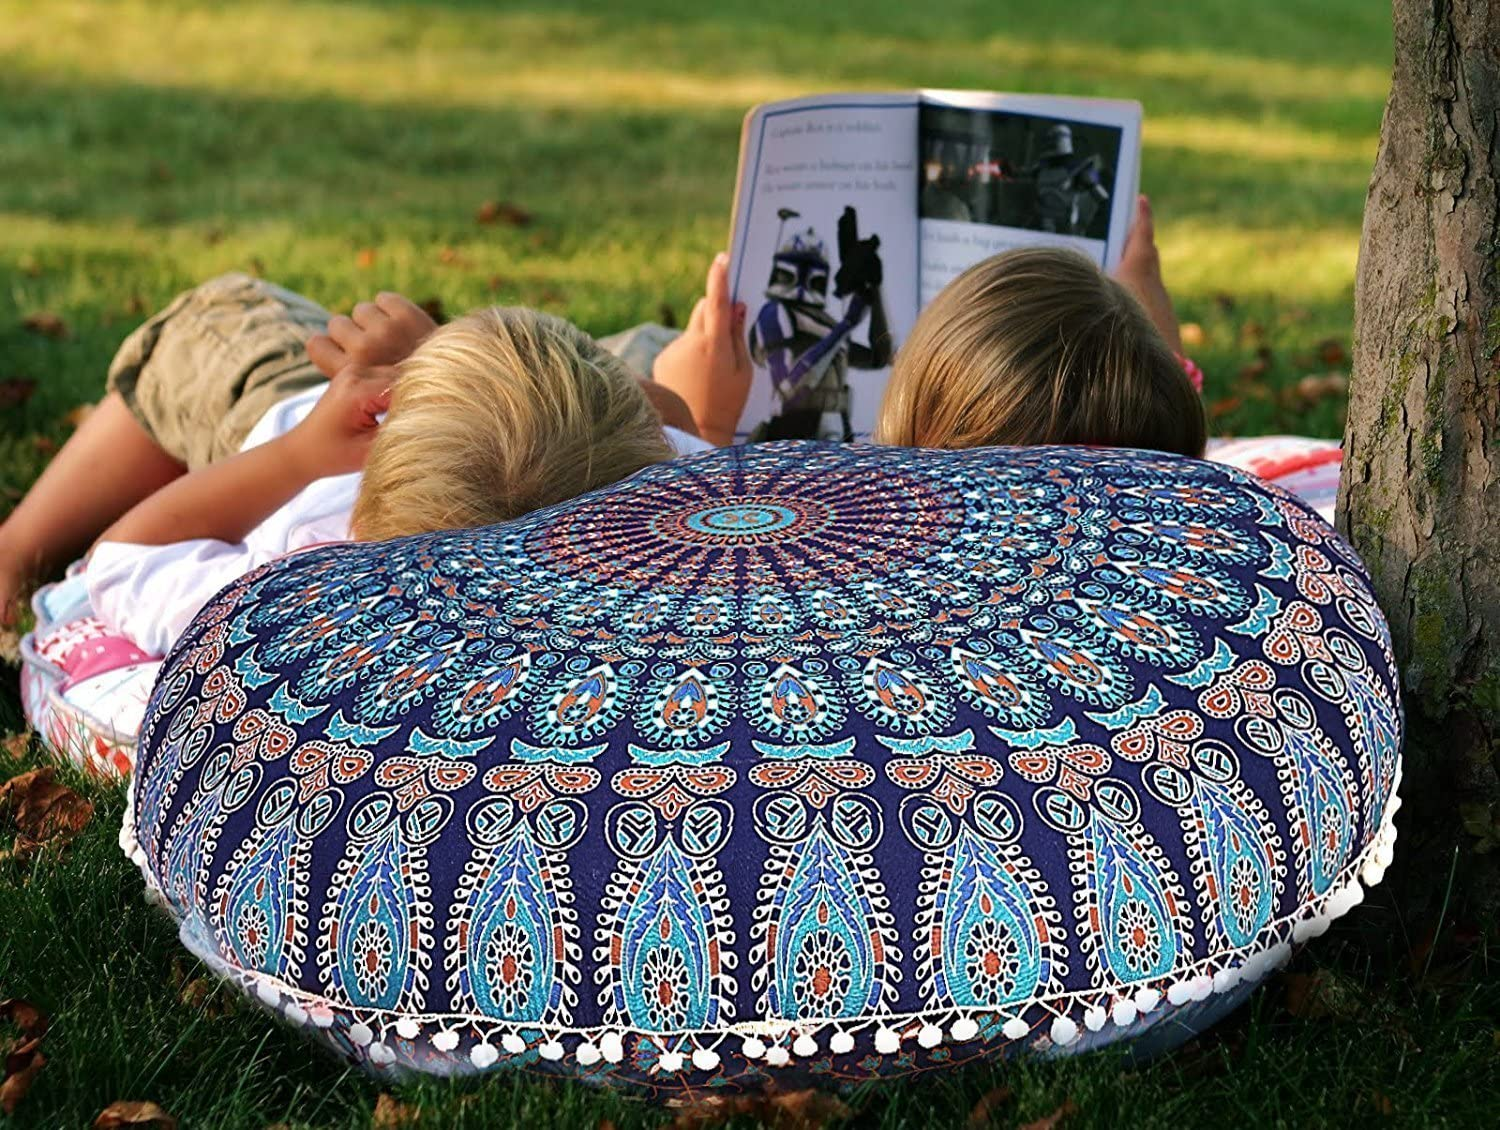 House furnishing Item 30 Christmas gift Christmas Decoration Hand Printed ICC Bohemian Ombre Indian Mandala Pouf // Floor Cushion Cover,Organic Cotton